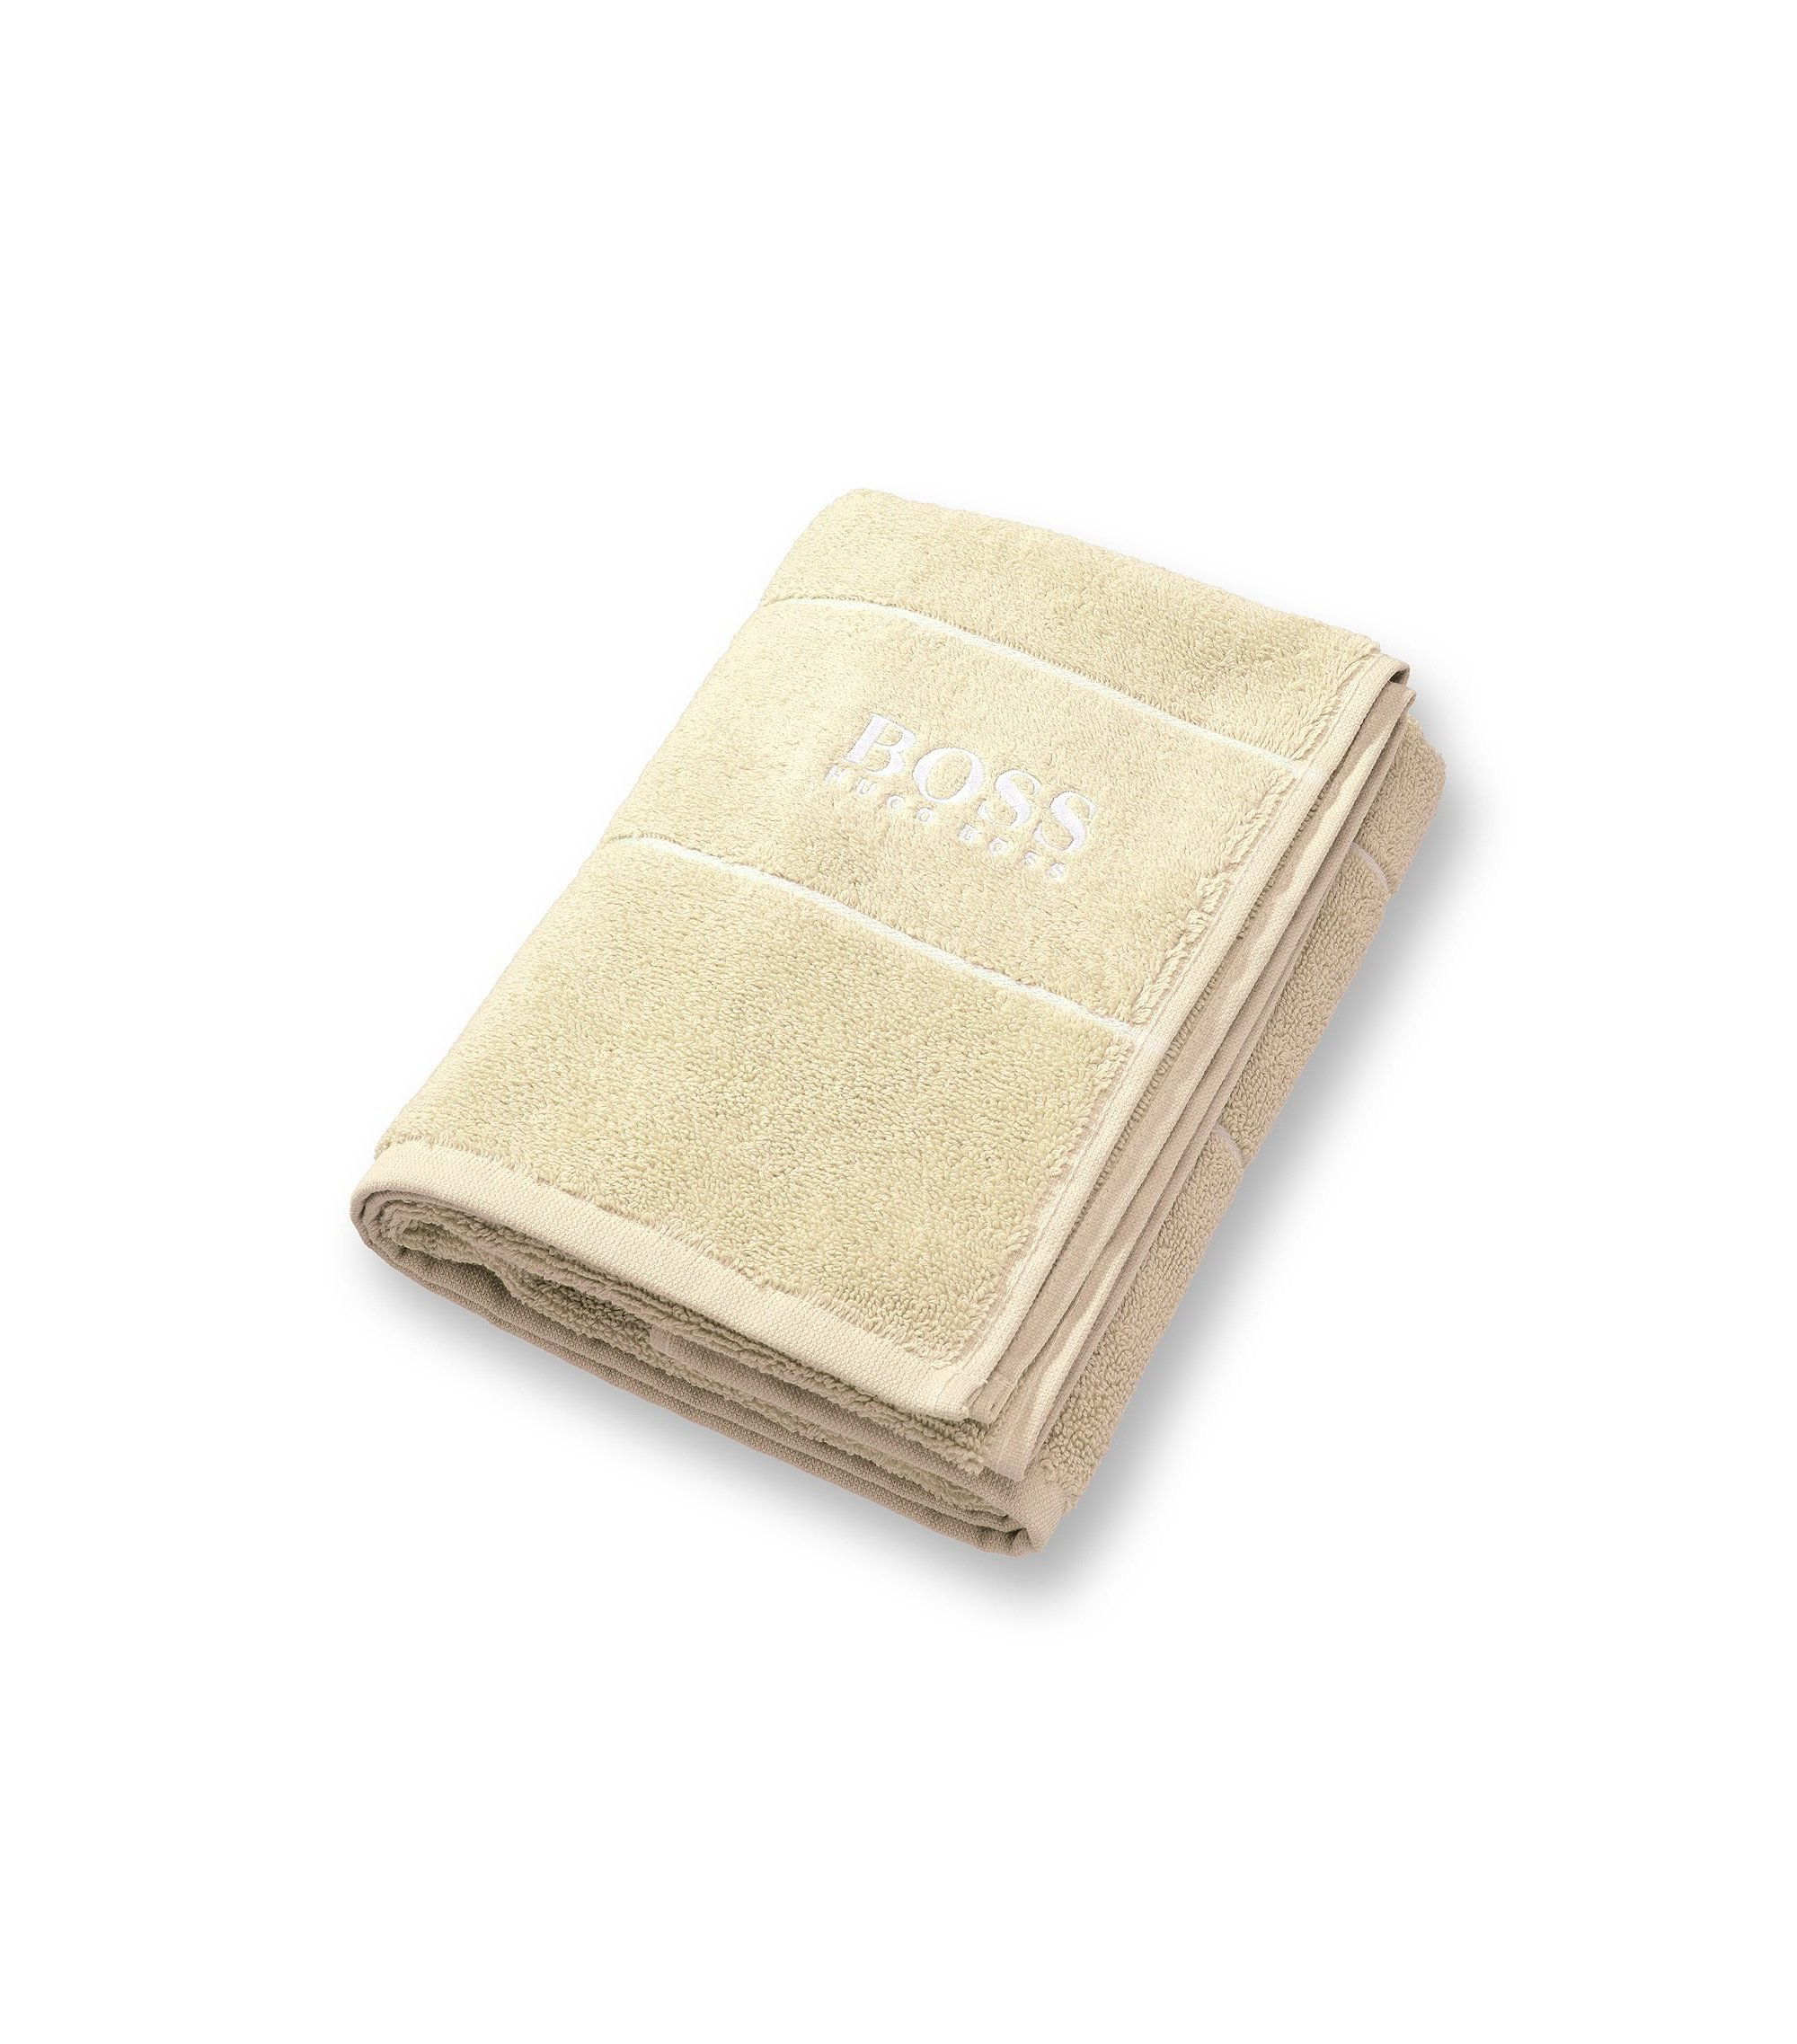 Finest Egyptian cotton hand towel with logo border, Light Beige